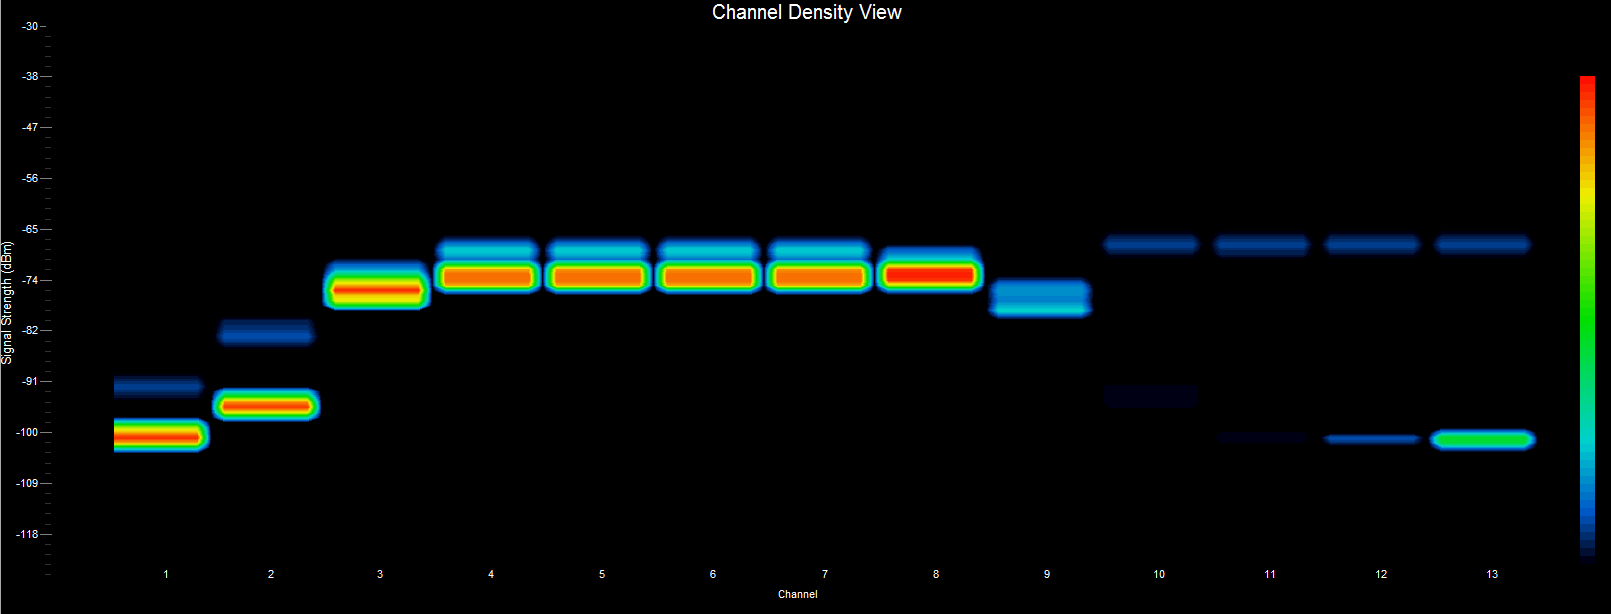 WiFi Surveyor -- Channel Density